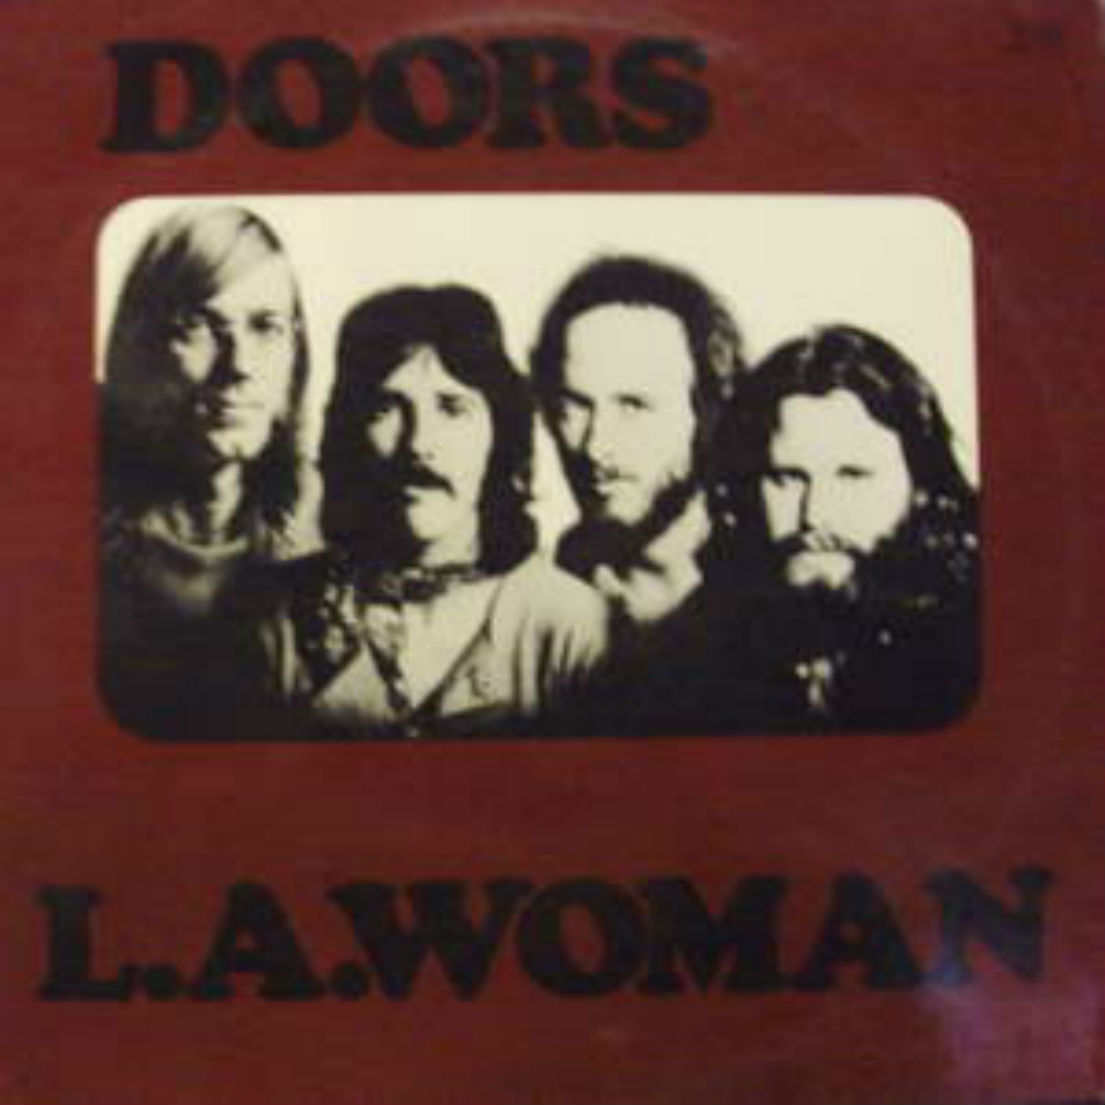 L.a.woman - Doors